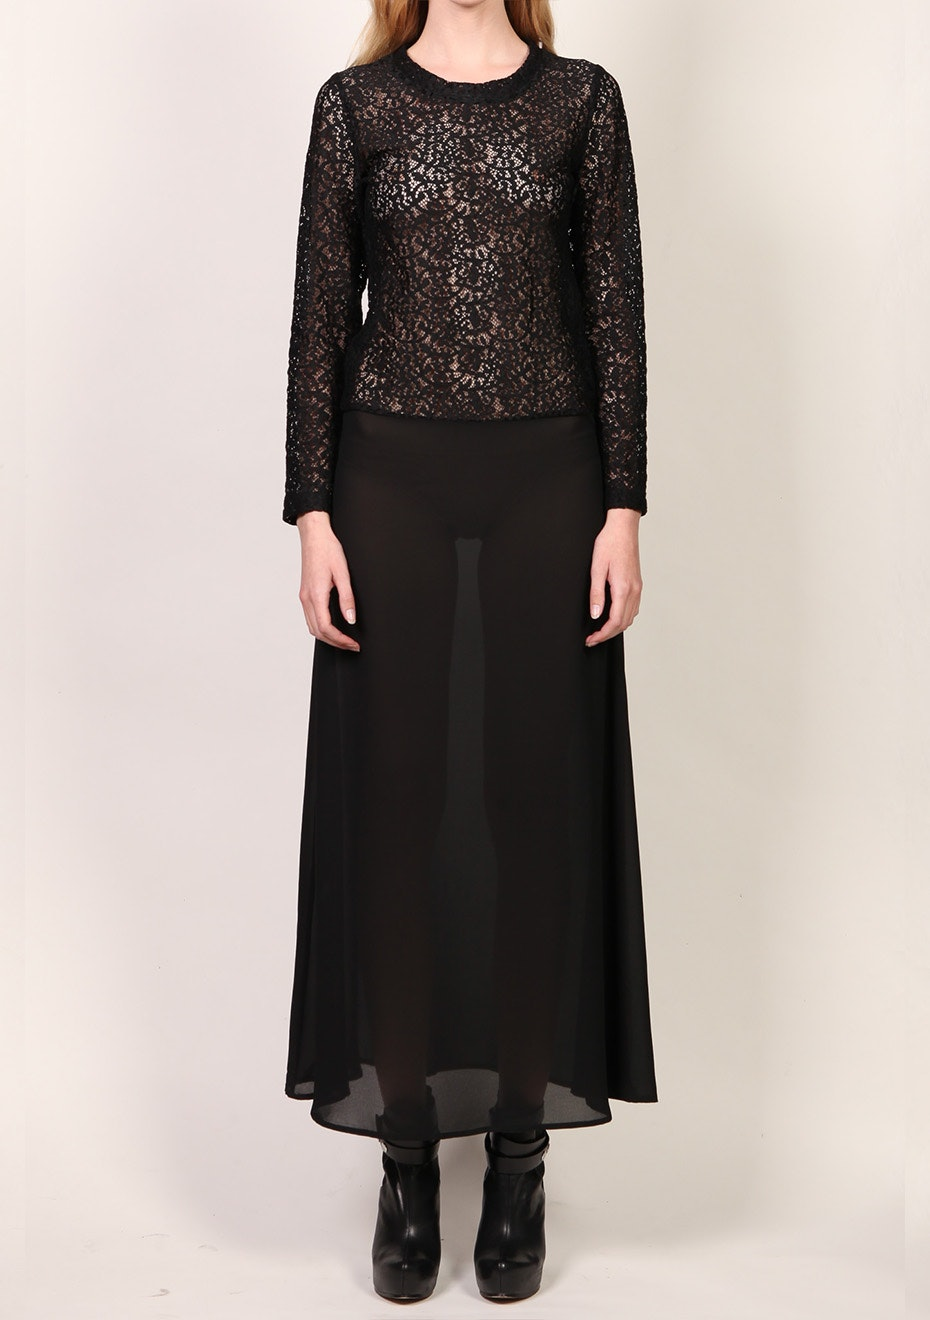 X-Plain - Long sleeve Lace Dress - Black